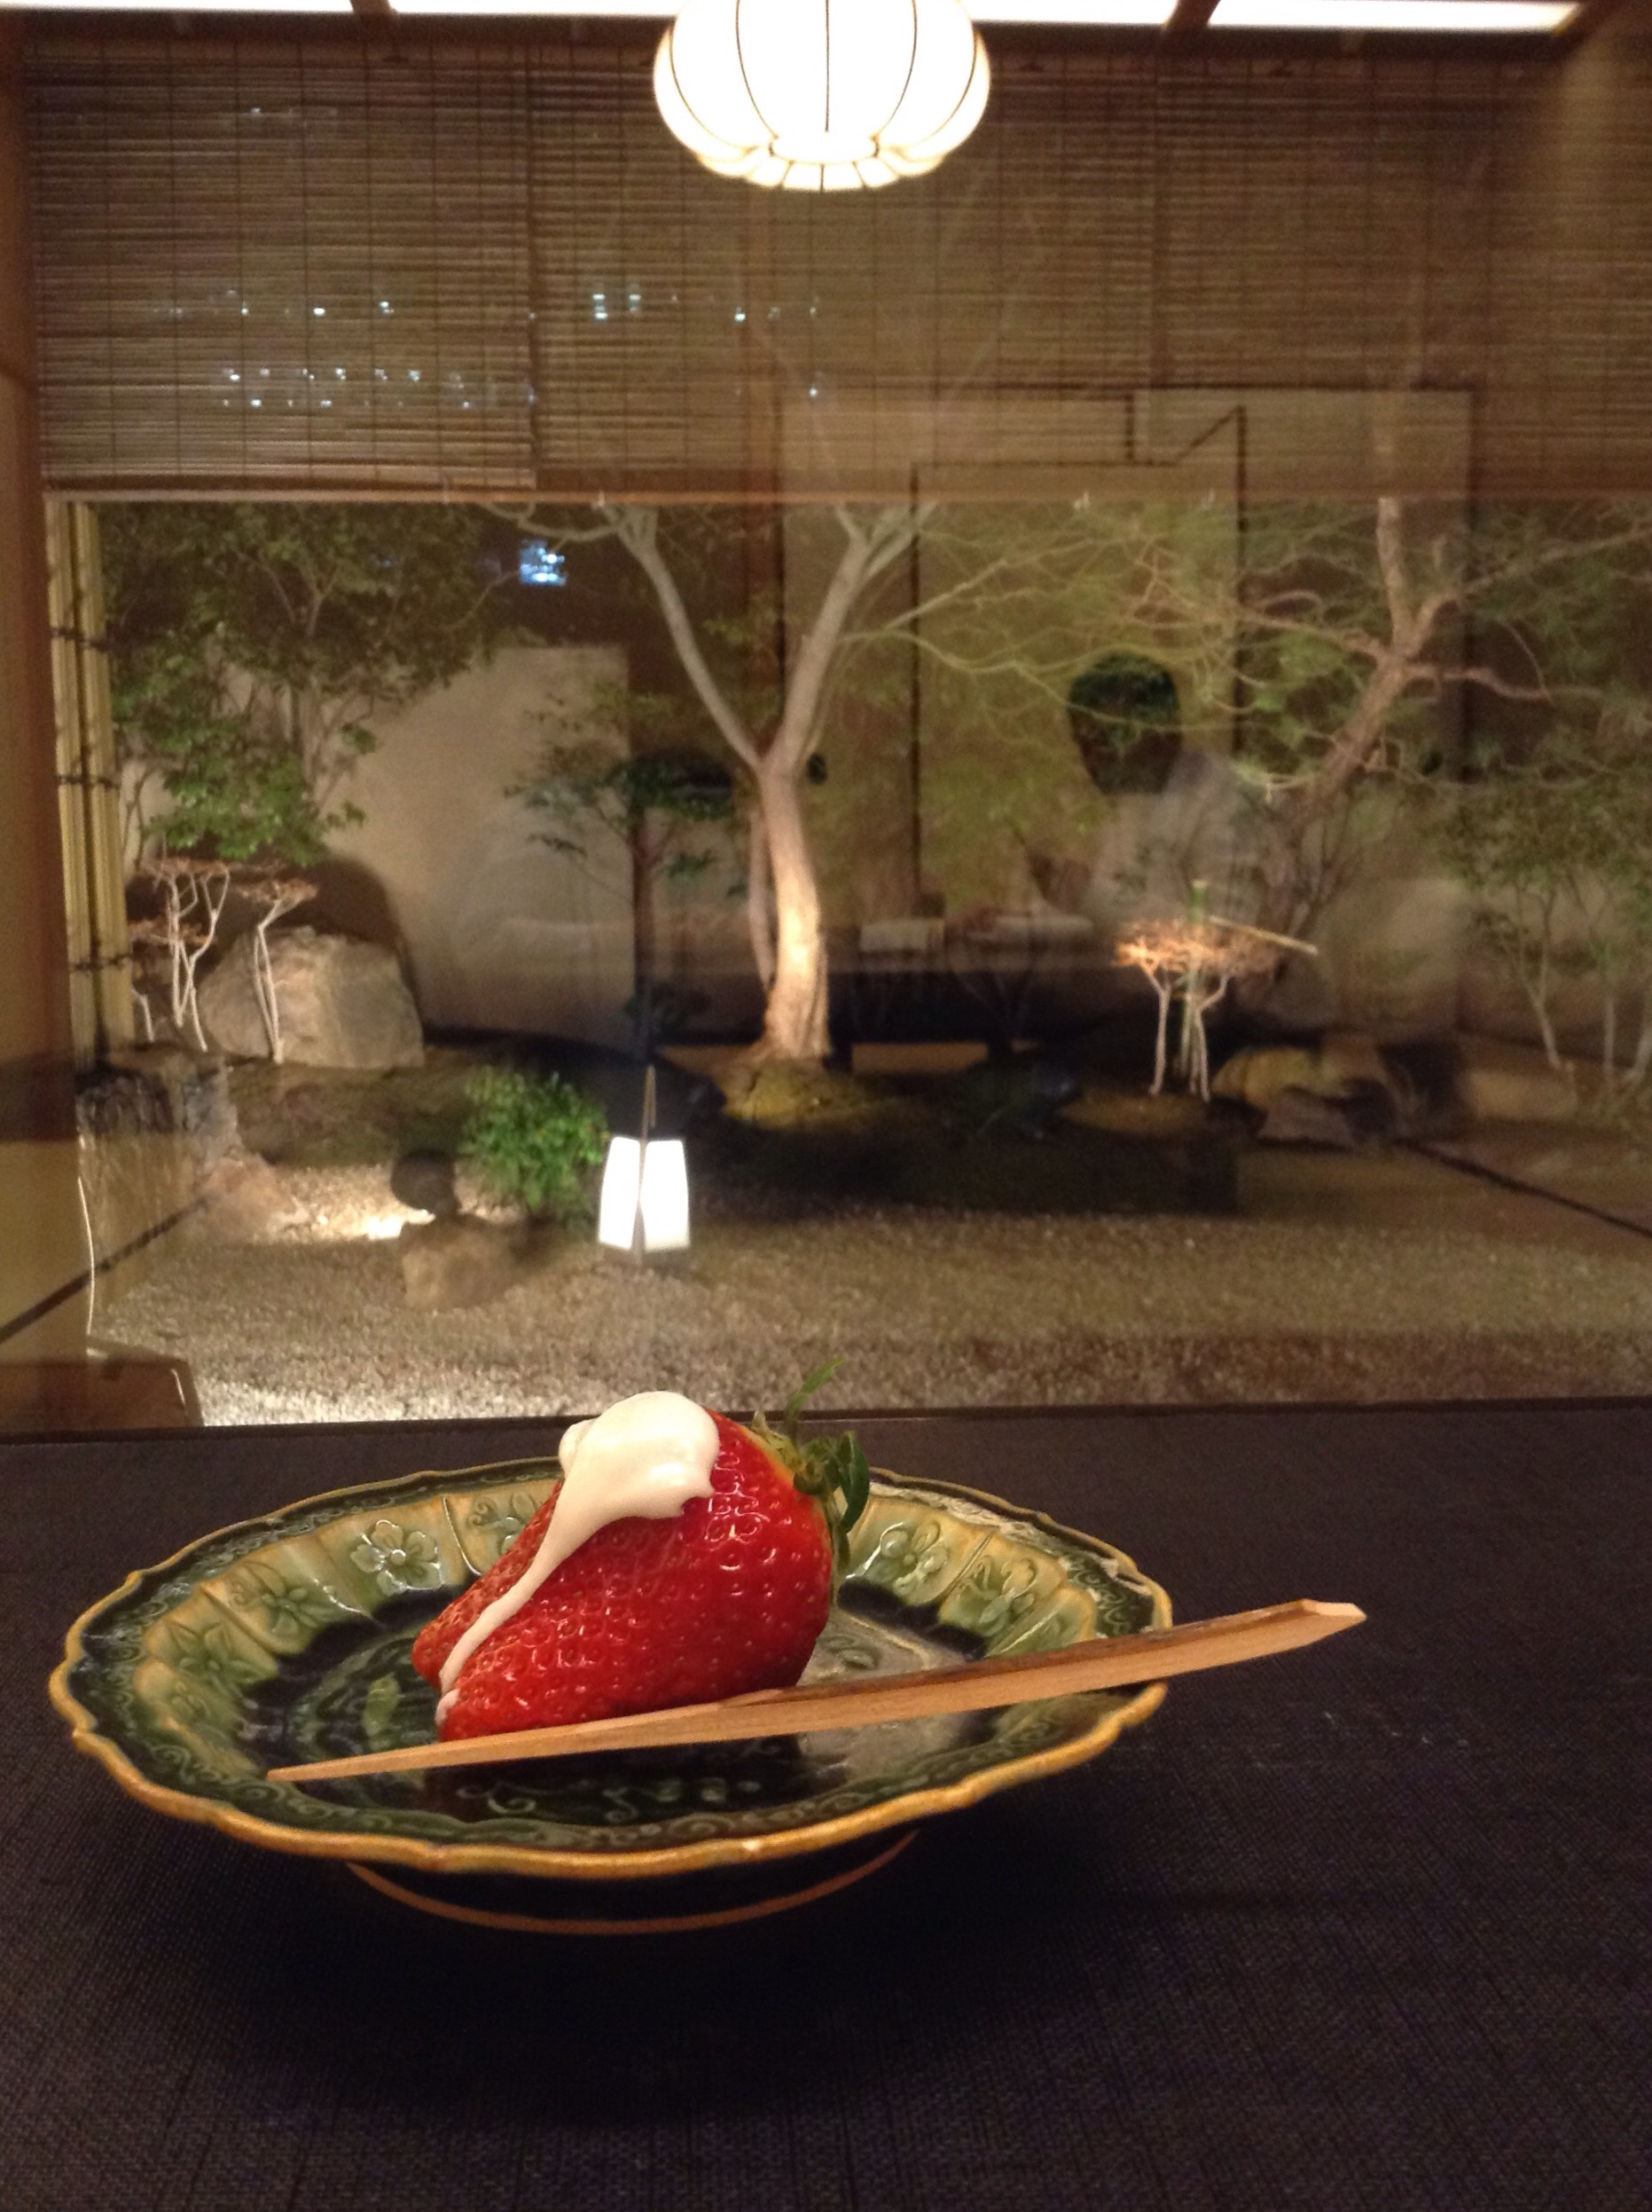 Our dessert last night and the view to the garden